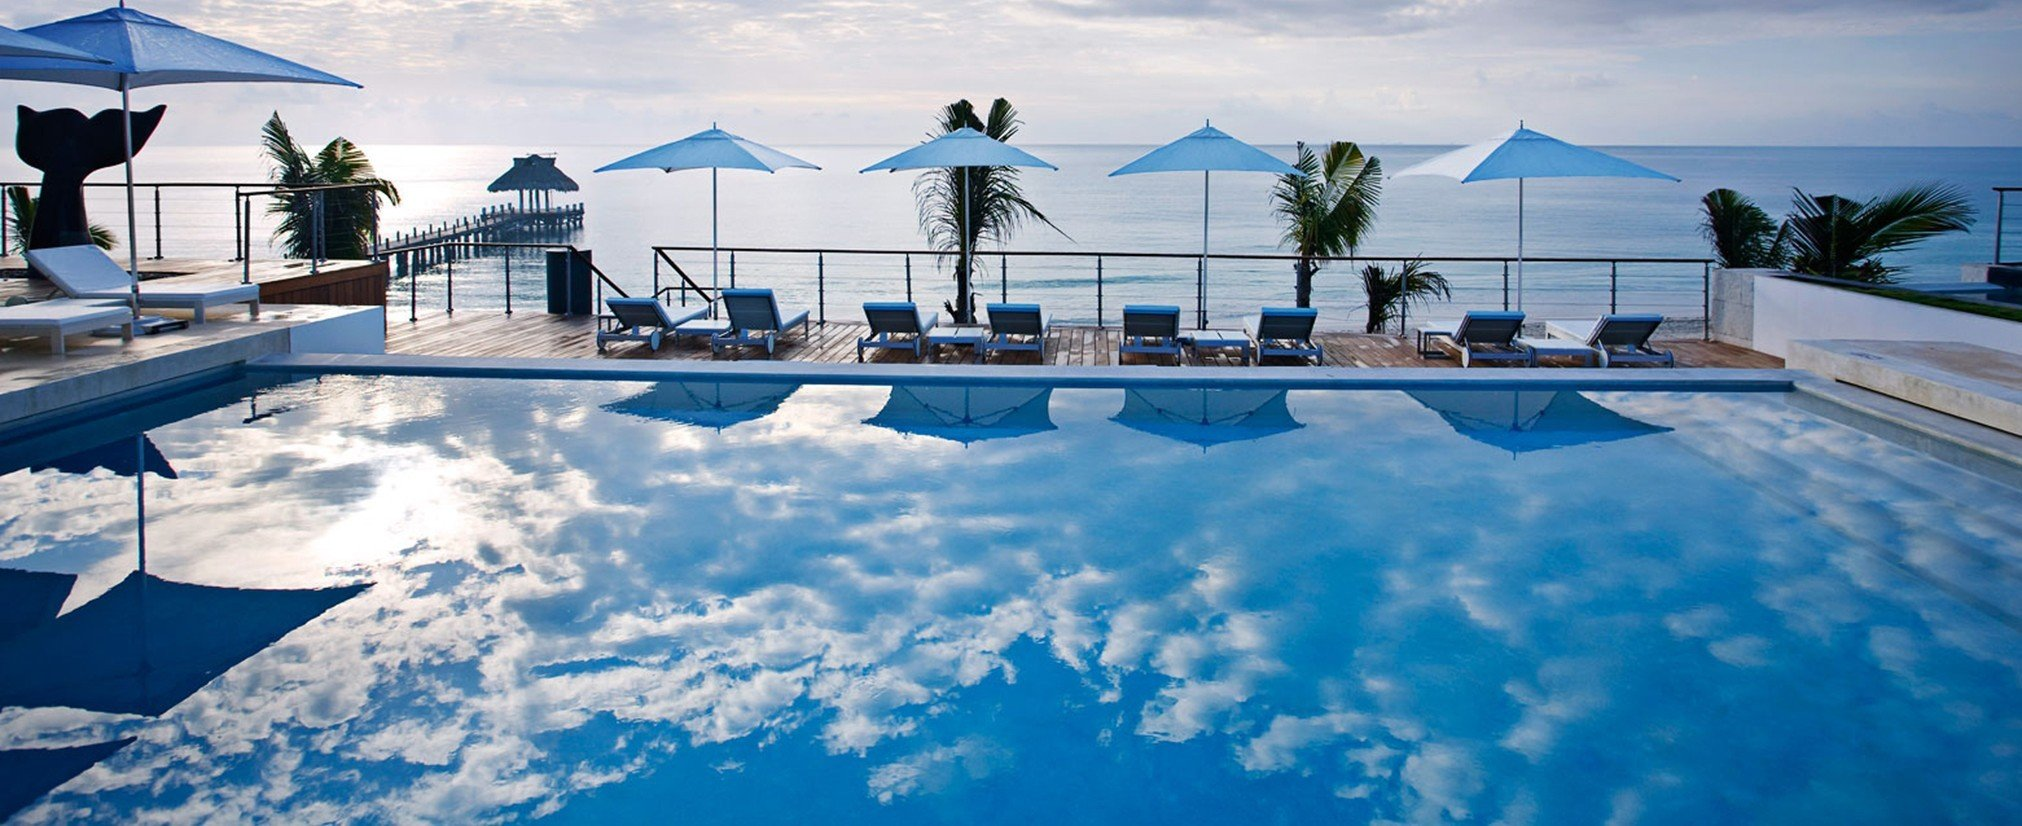 Hotels sky outdoor swimming pool blue leisure Resort vacation Nature estate Villa day clouds shore